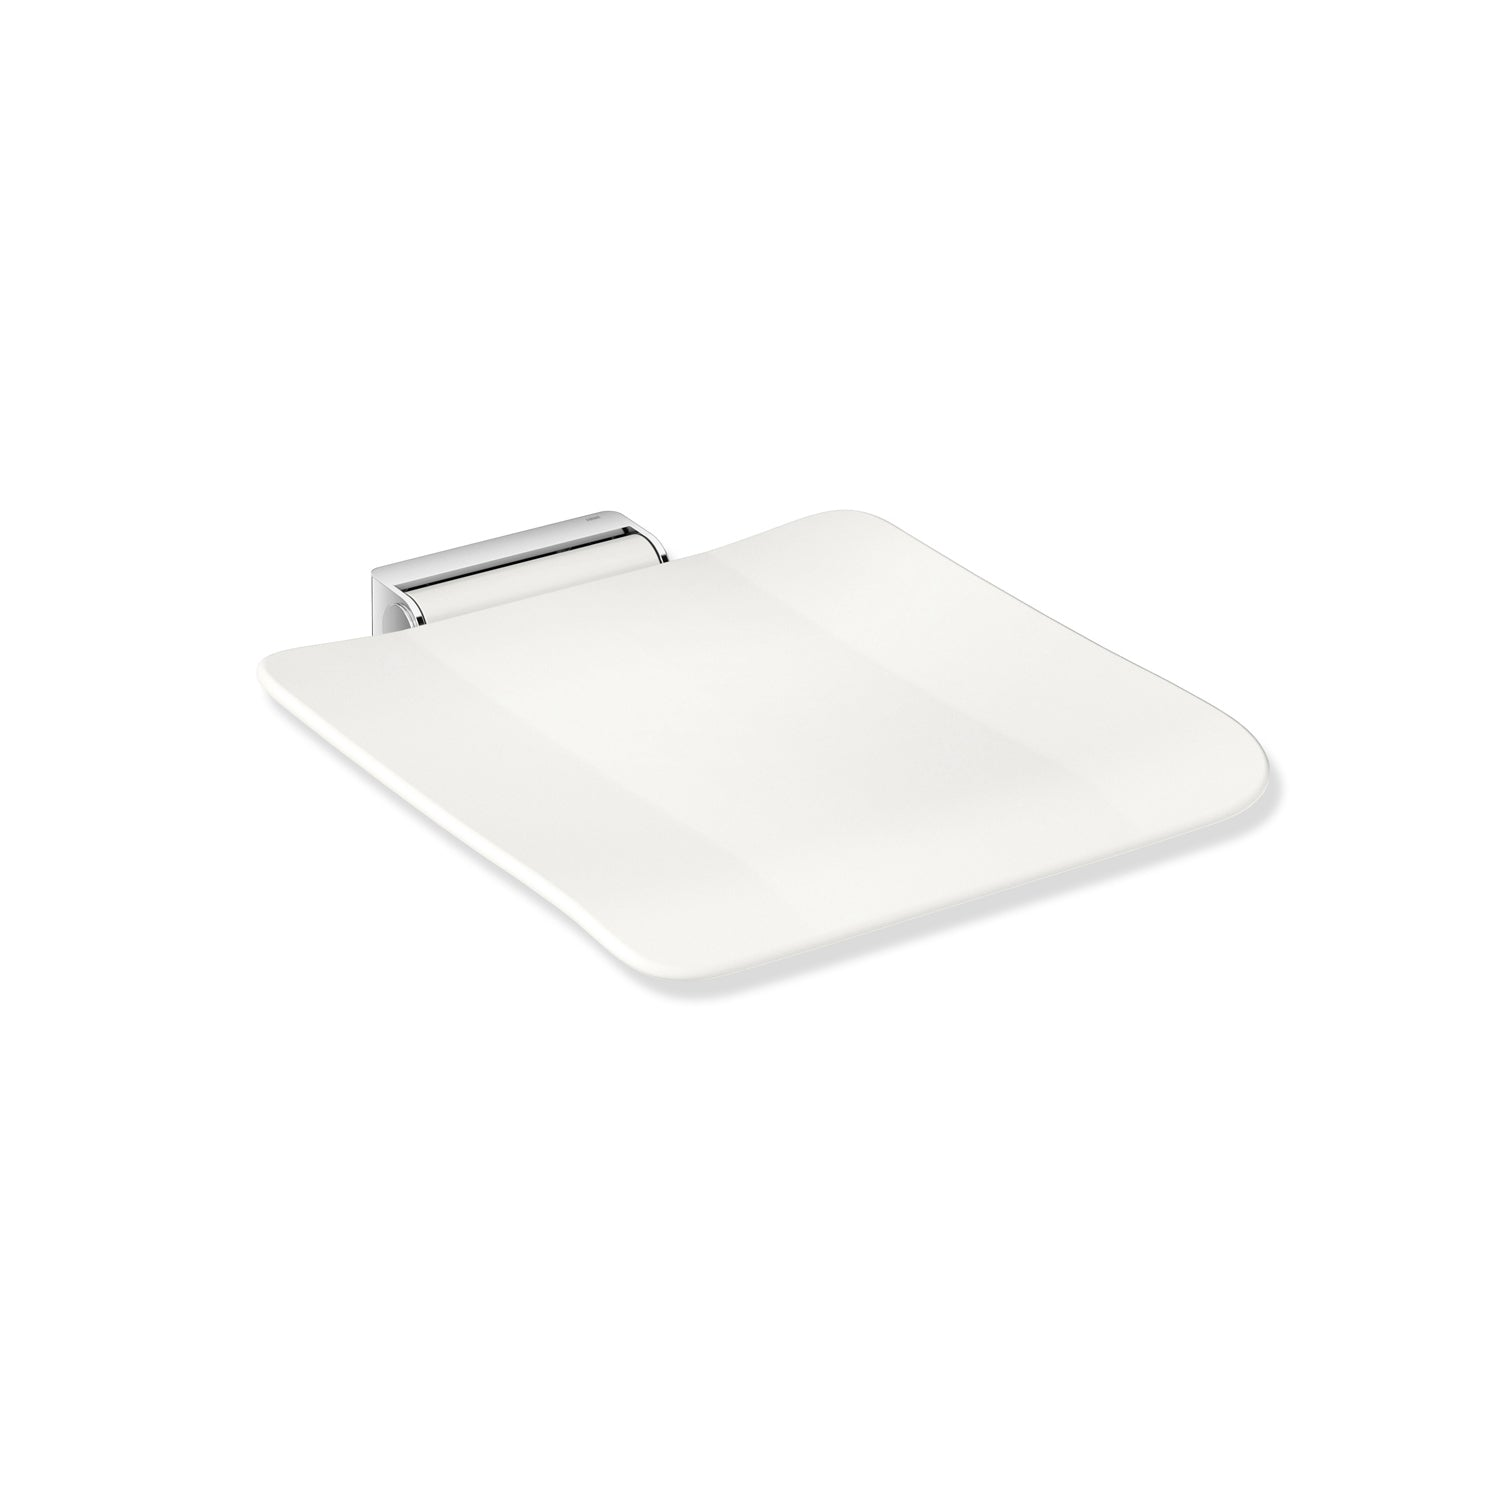 Freestyle Removable Shower Seat Set with a white Seat Set and chrome bracket on a white background